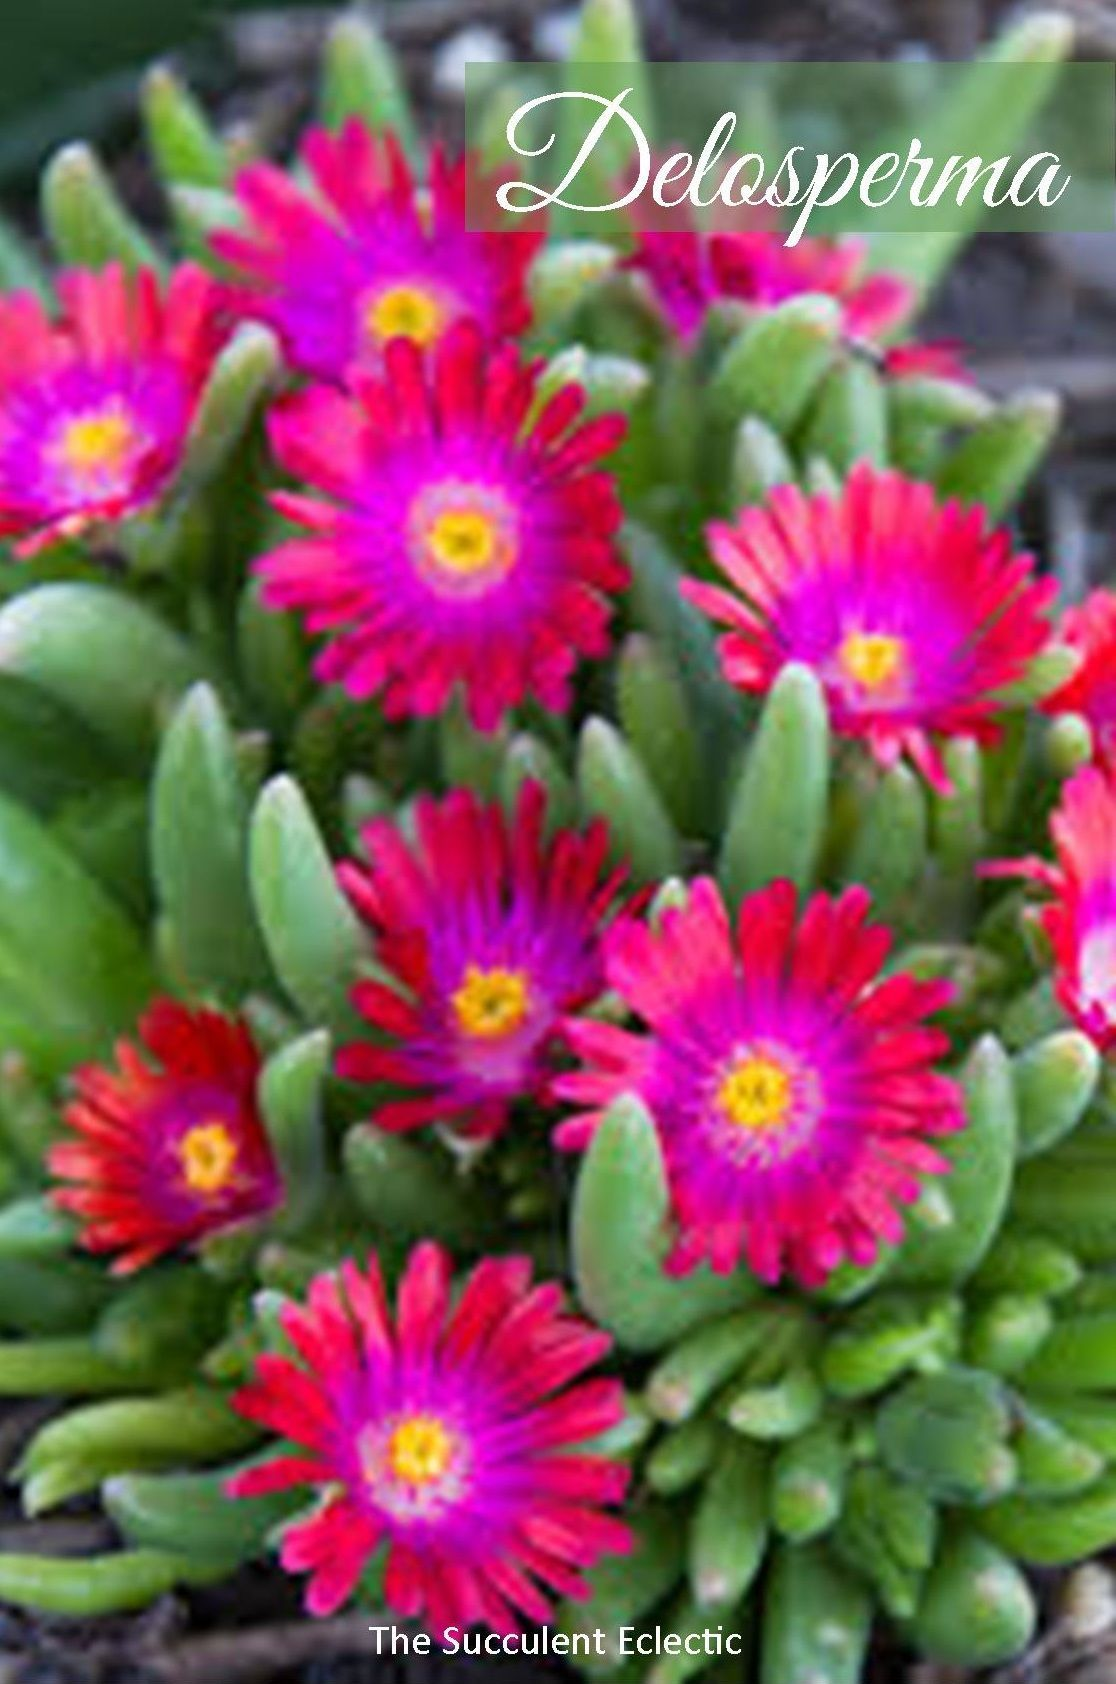 Delosperma Ice Plant Is The Best Succulent Ground Cover For So Many Reasons Colorful Loaded With Blooms Attracts Pollinators Re Plants Ice Plant Succulents